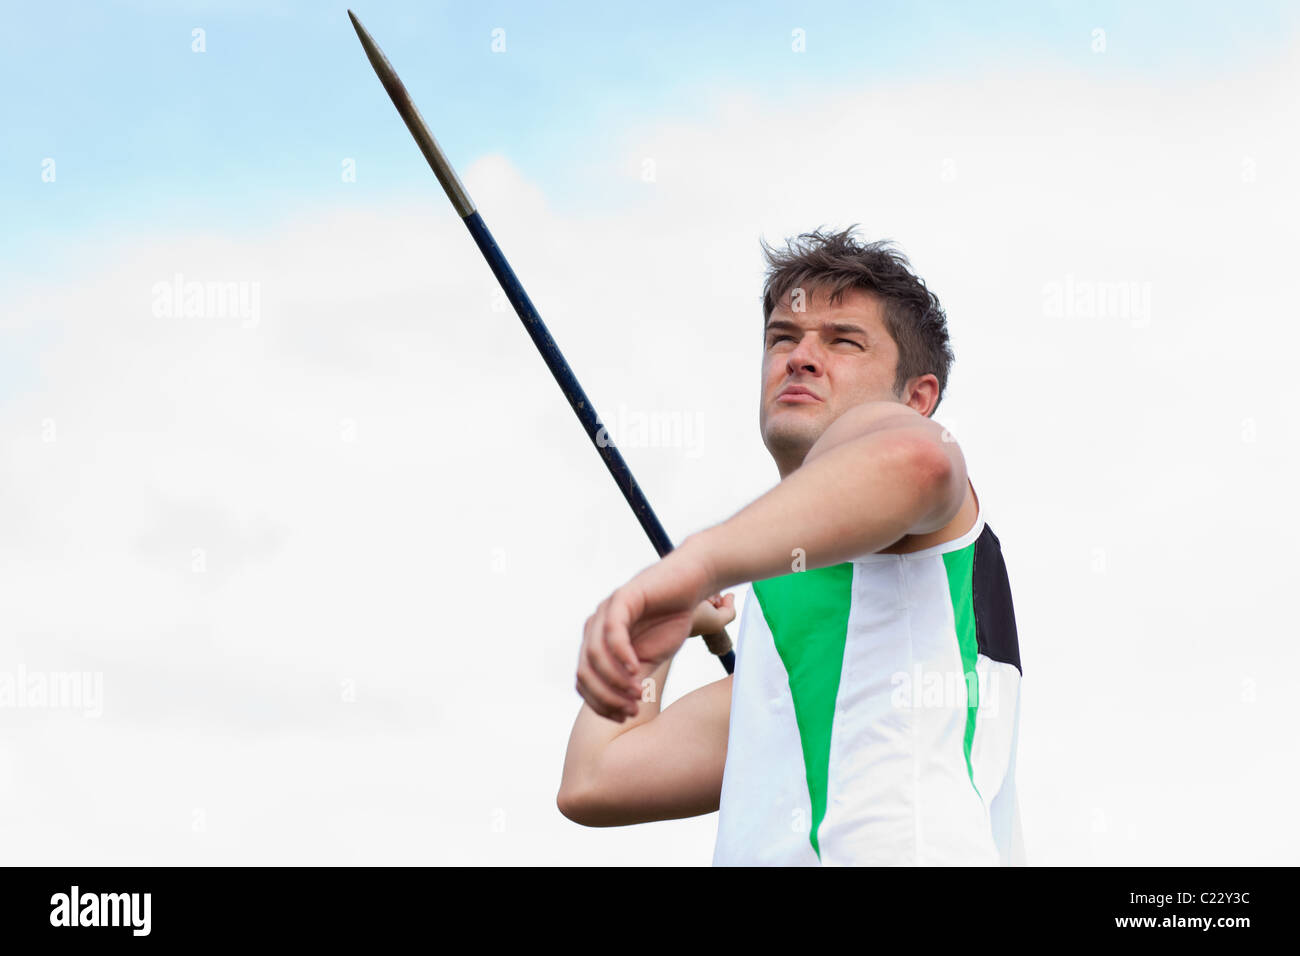 Determined sportsman throwing the javelin - Stock Image